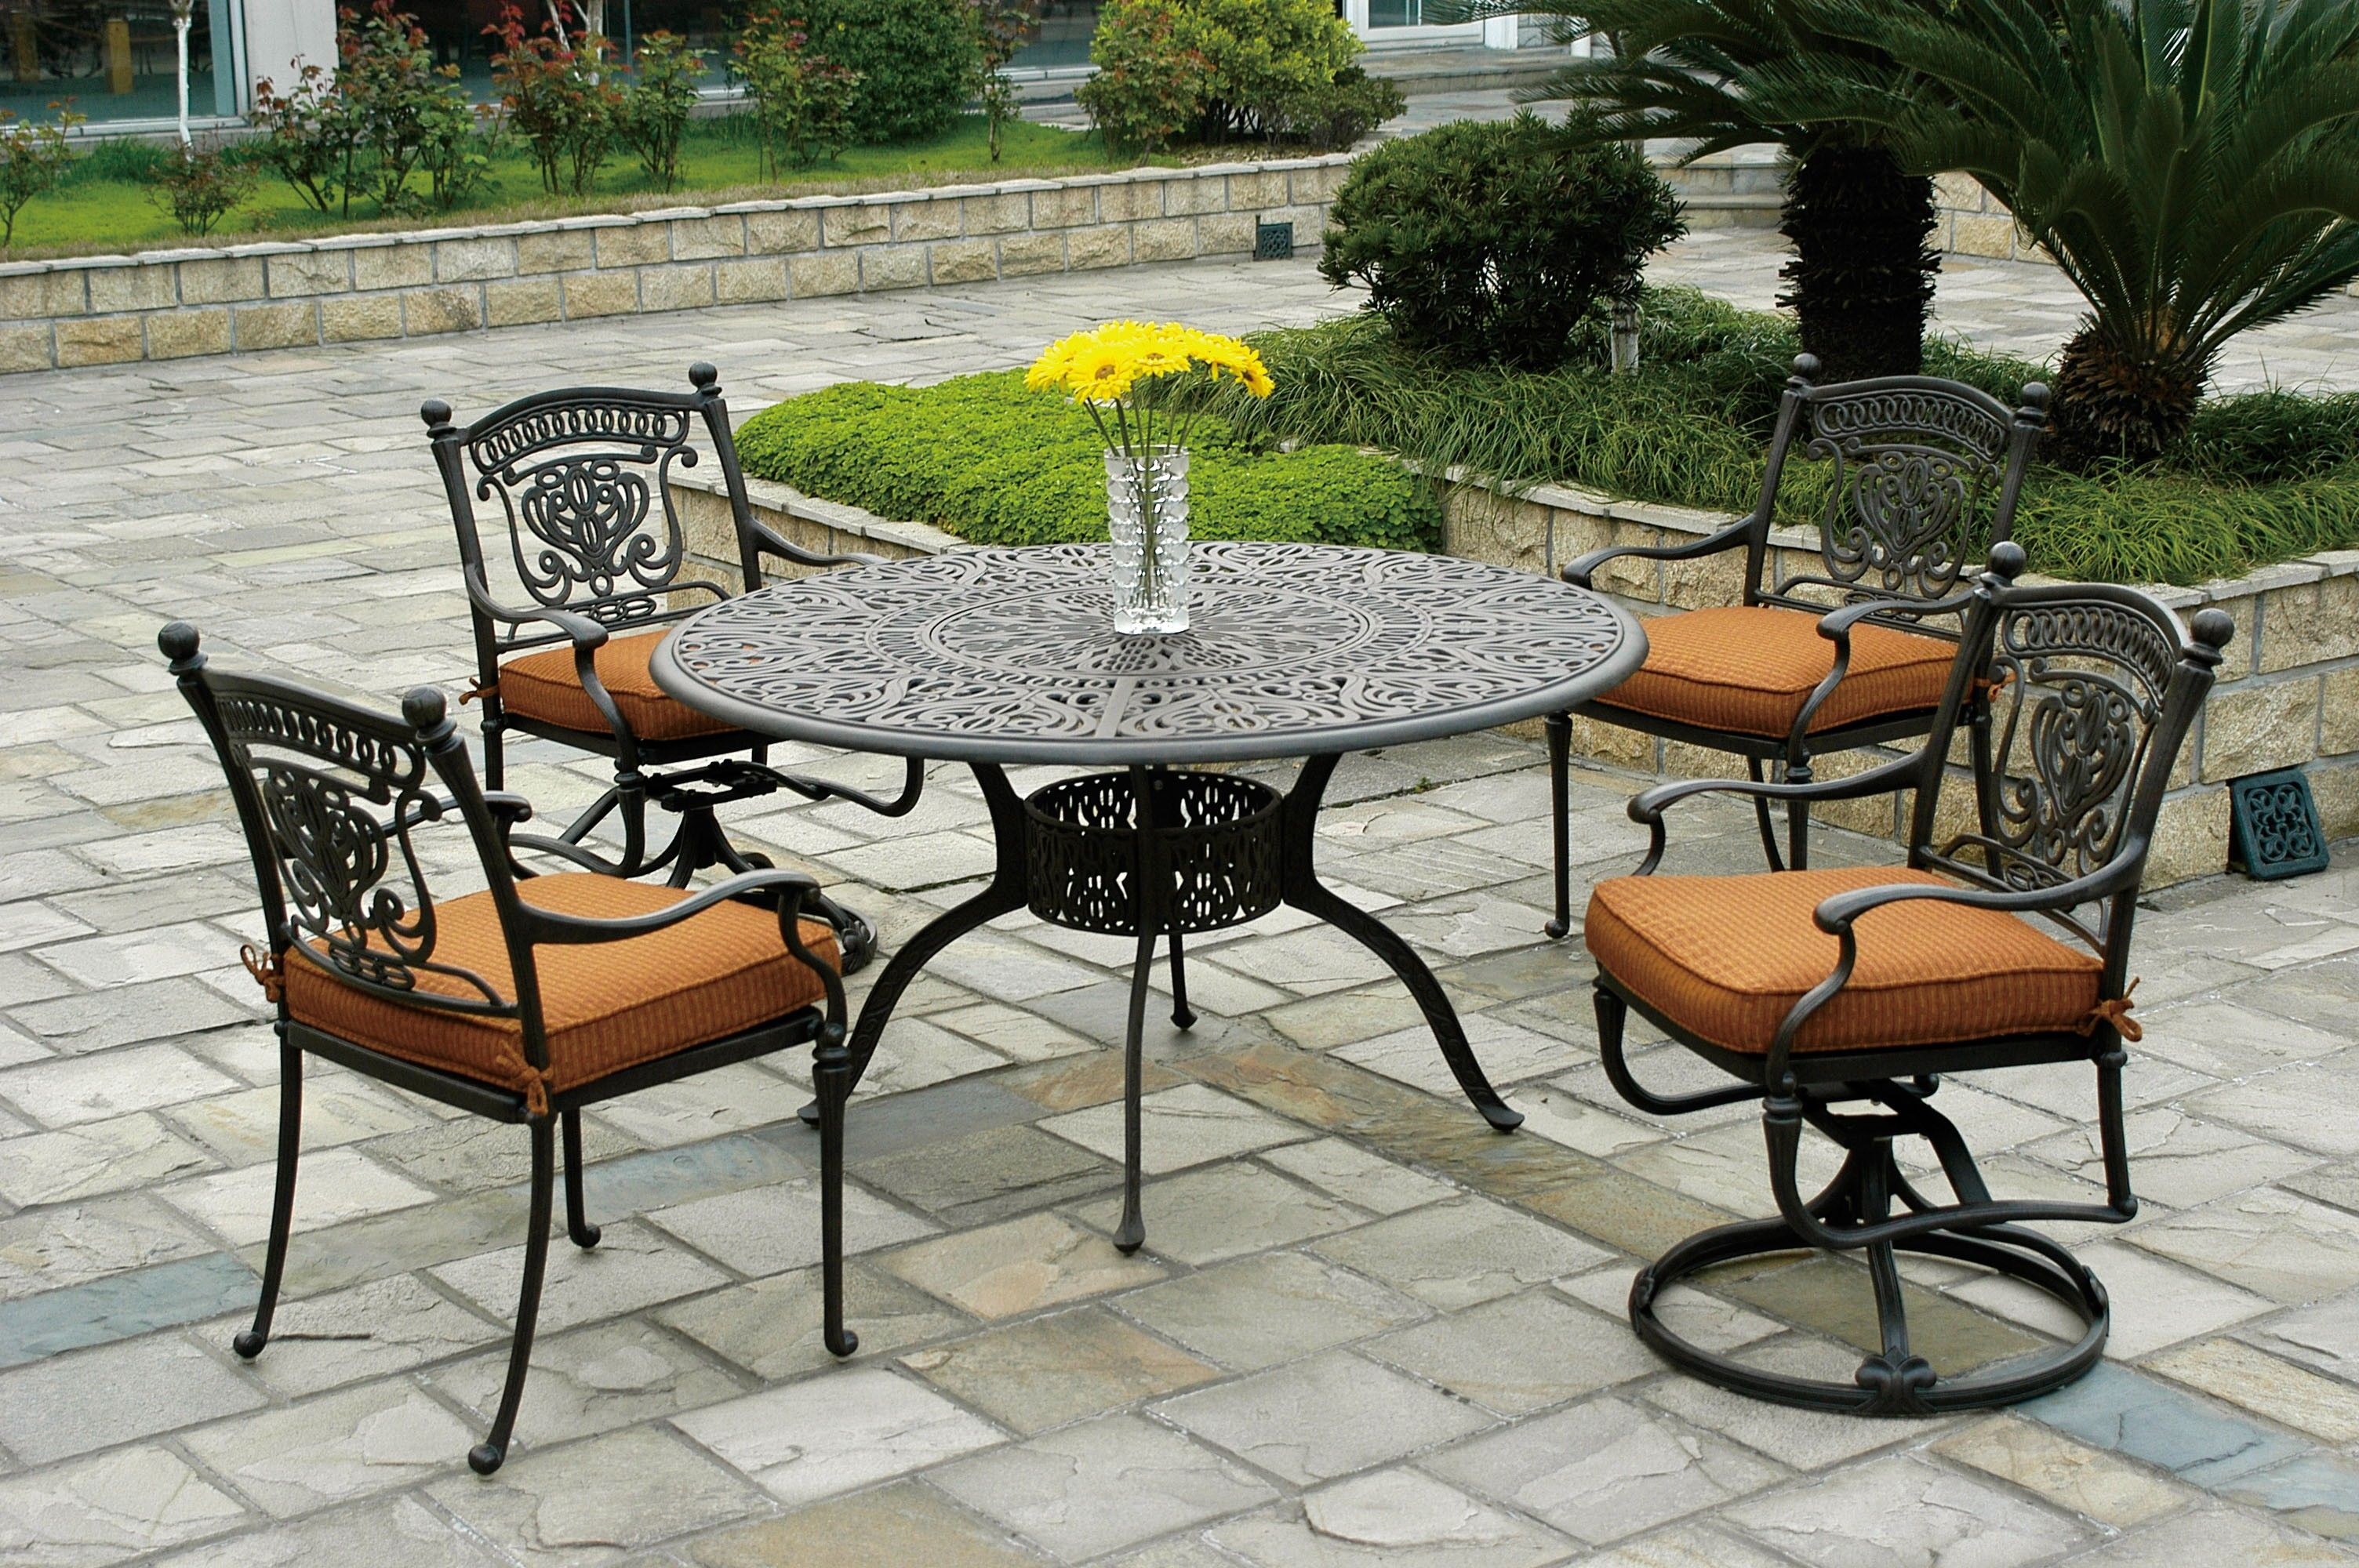 Cast iron patio set table chairs garden furniture http Cast iron garden furniture